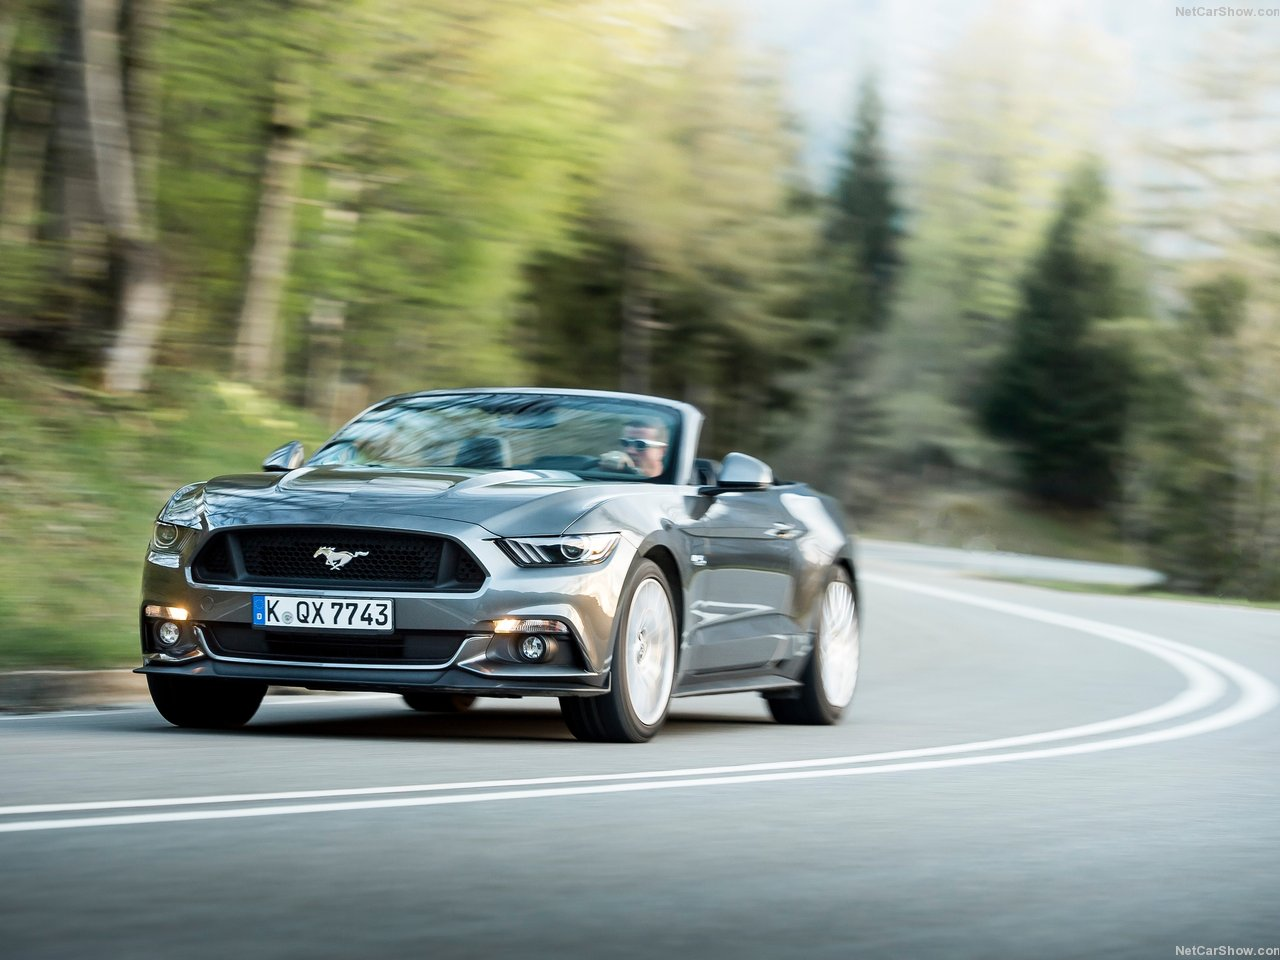 Ford Mustang Convertible EU-Version photo 142108